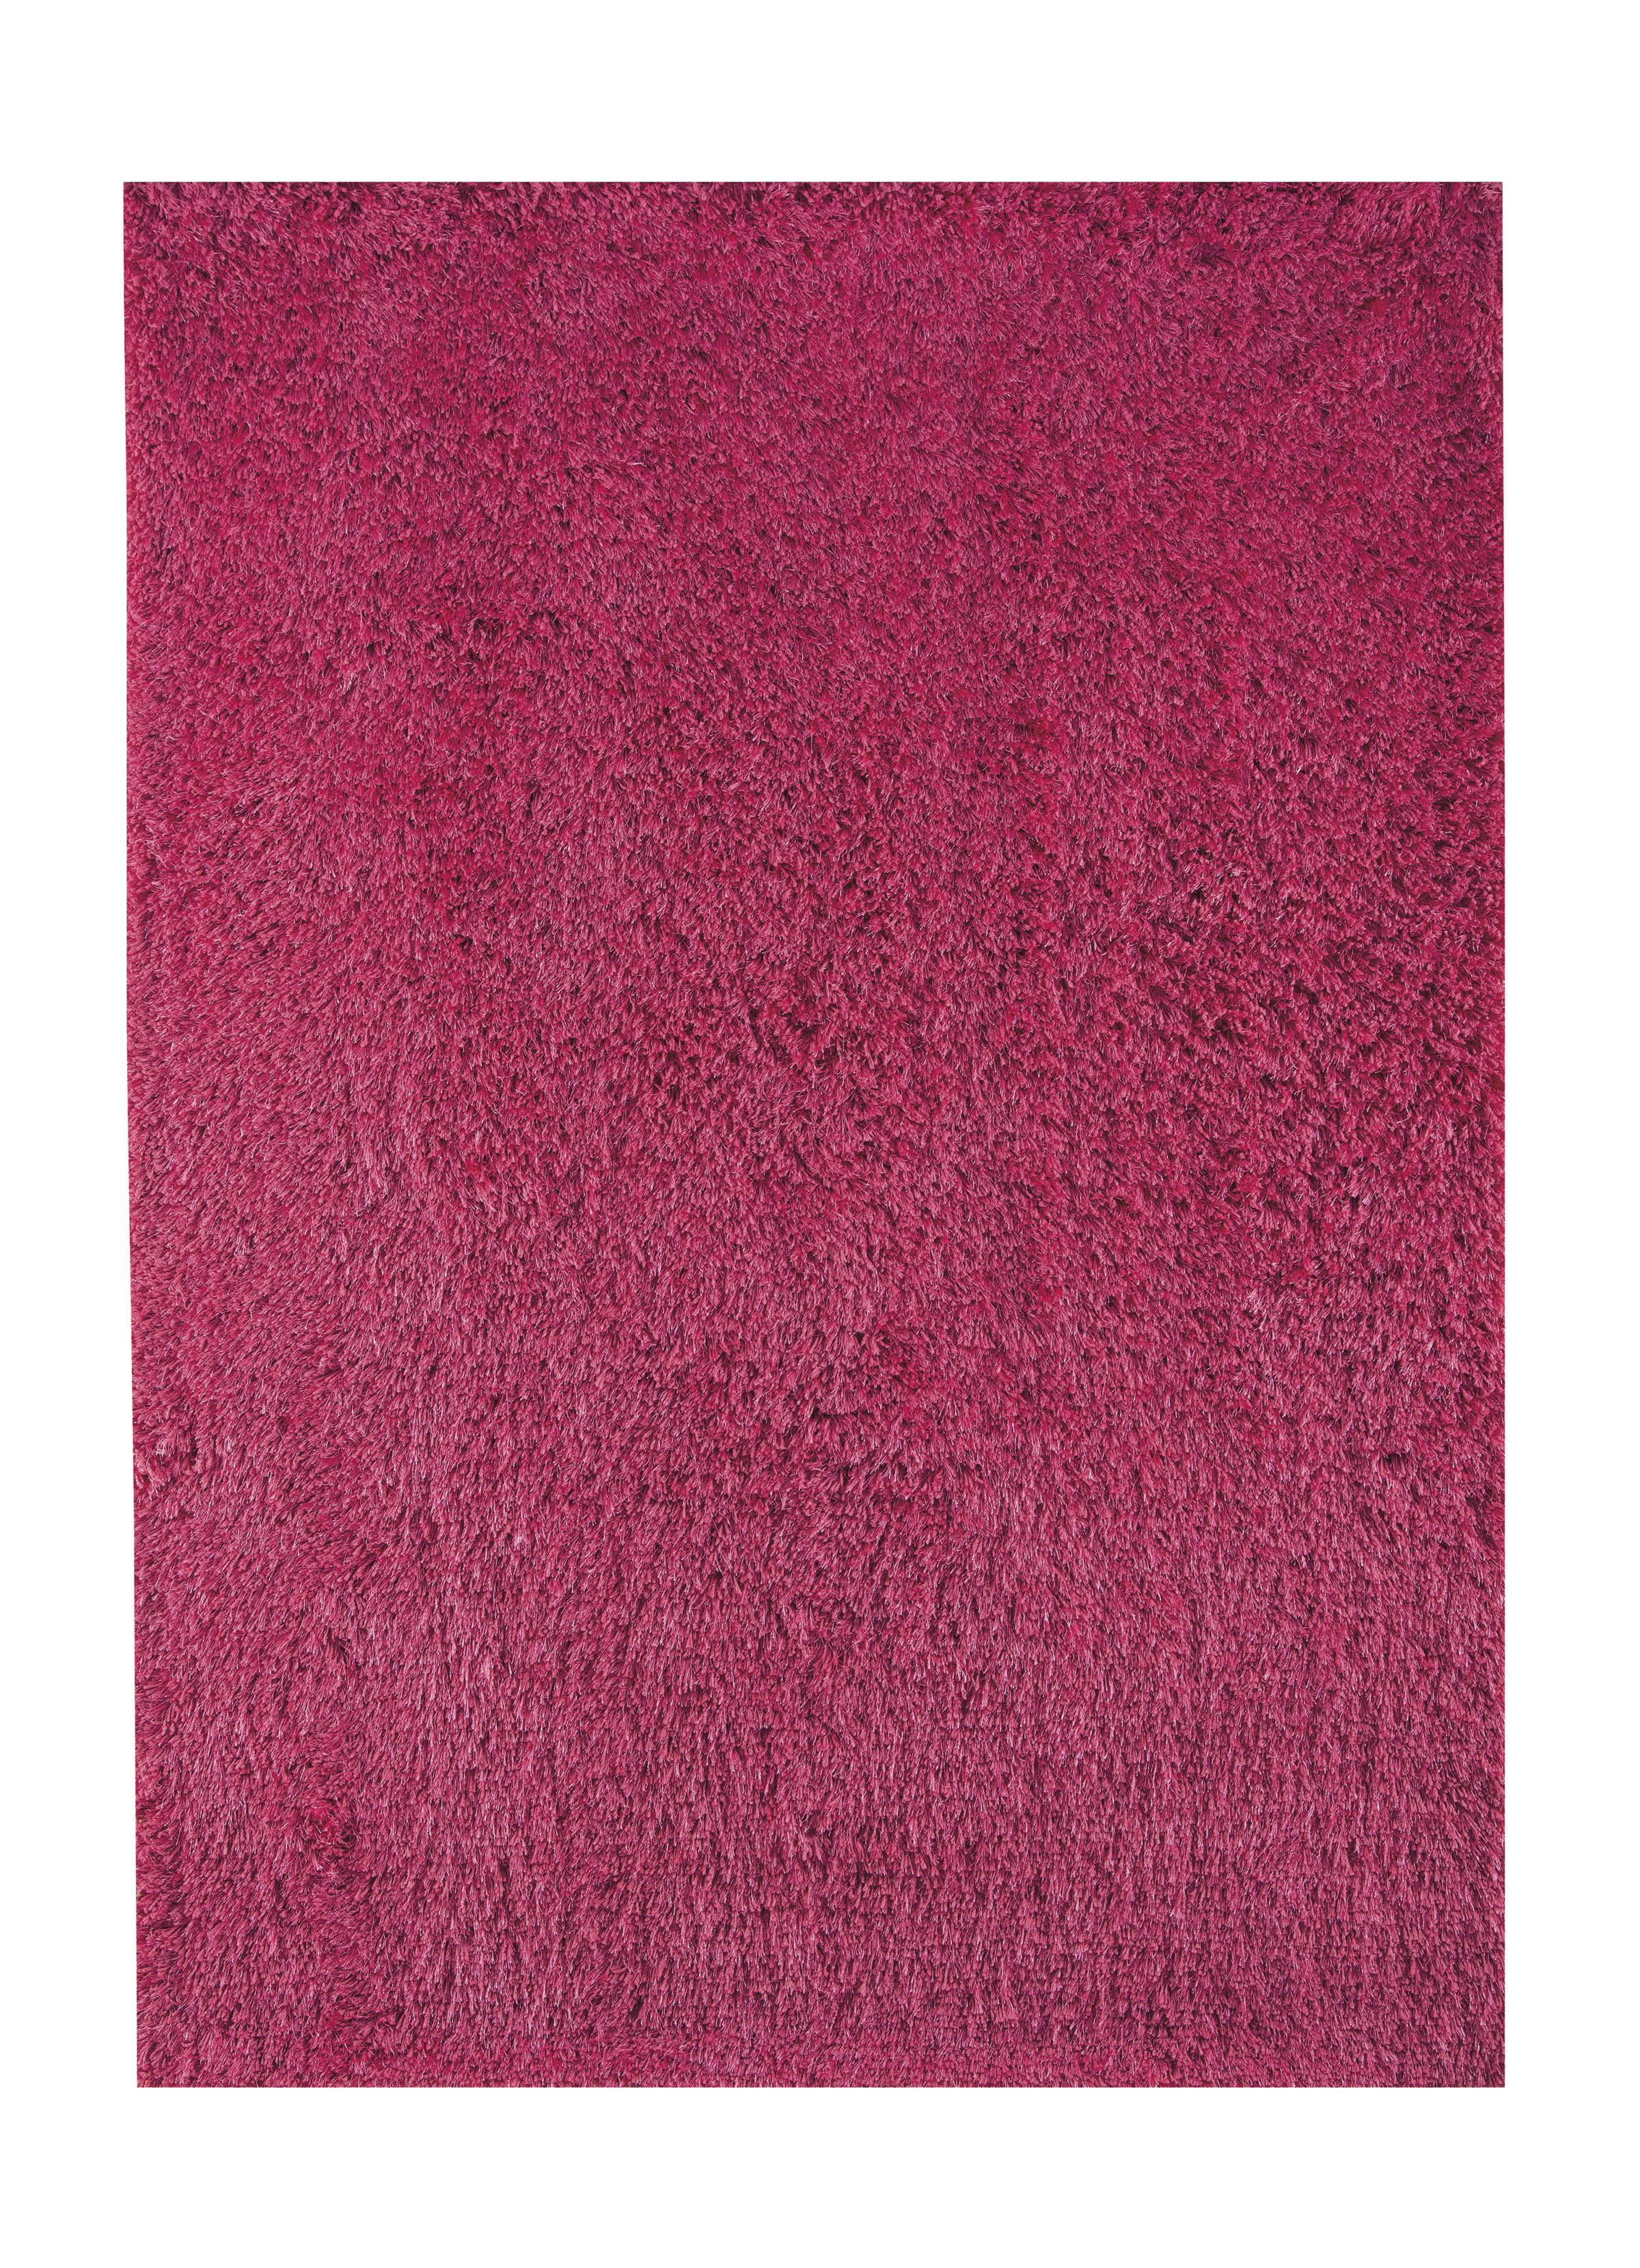 Signature Design by Ashley Contemporary Area Rugs Alonso Pink Medium Rug - Item Number: R400572